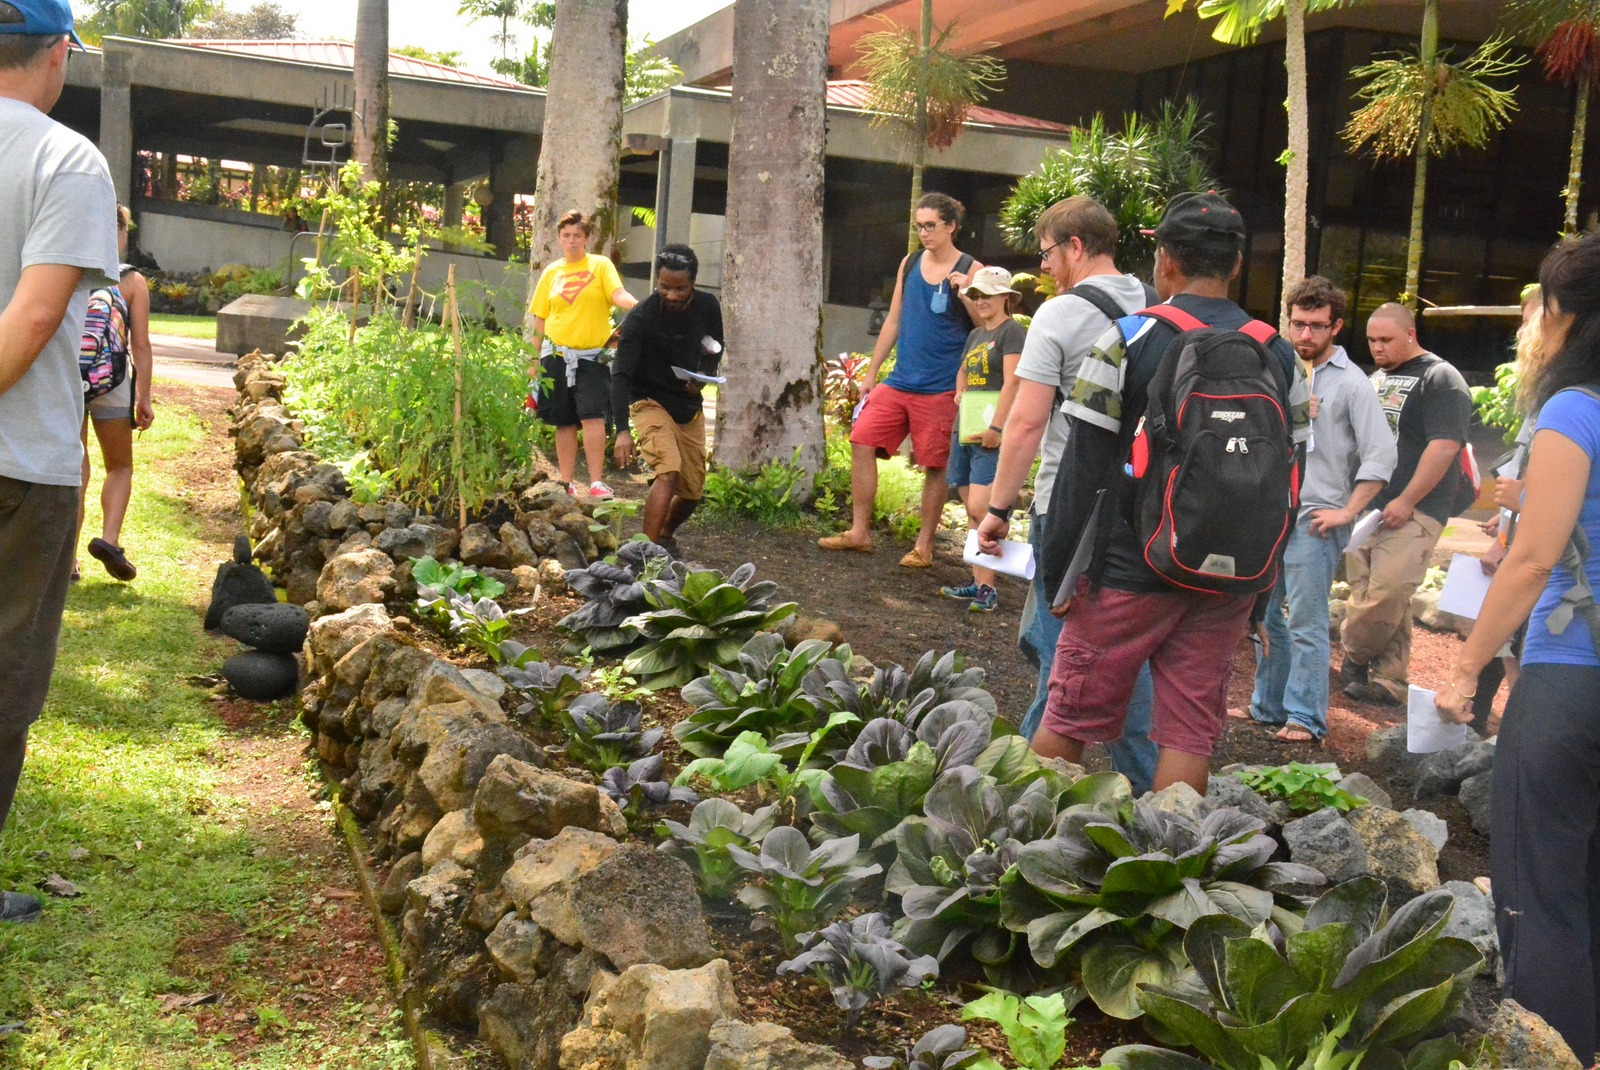 Students Gather Around Garden Filled With Leafy Greens.